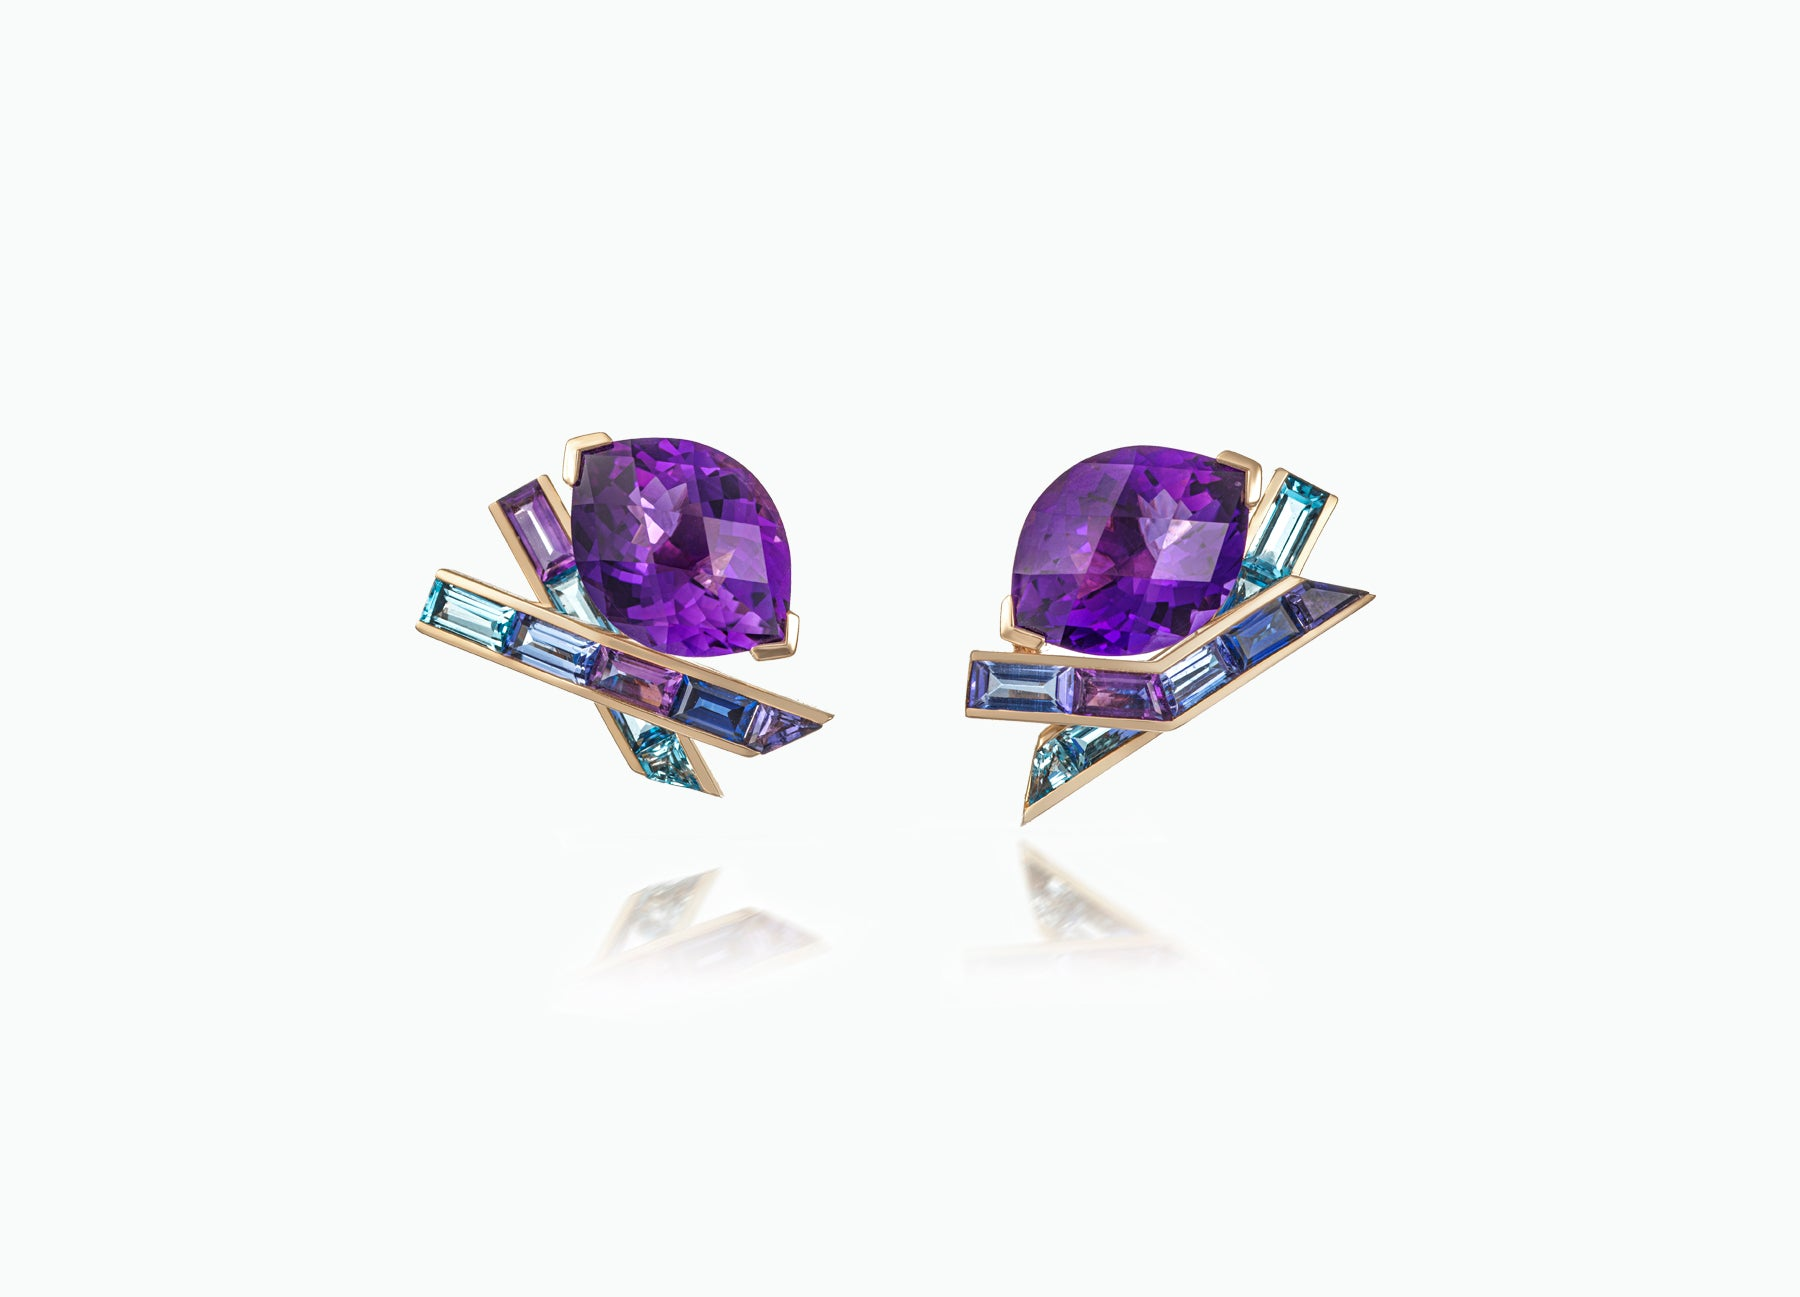 ELECTRIC NIGHT AMETHYST COCKTAIL STUD EARRINGS